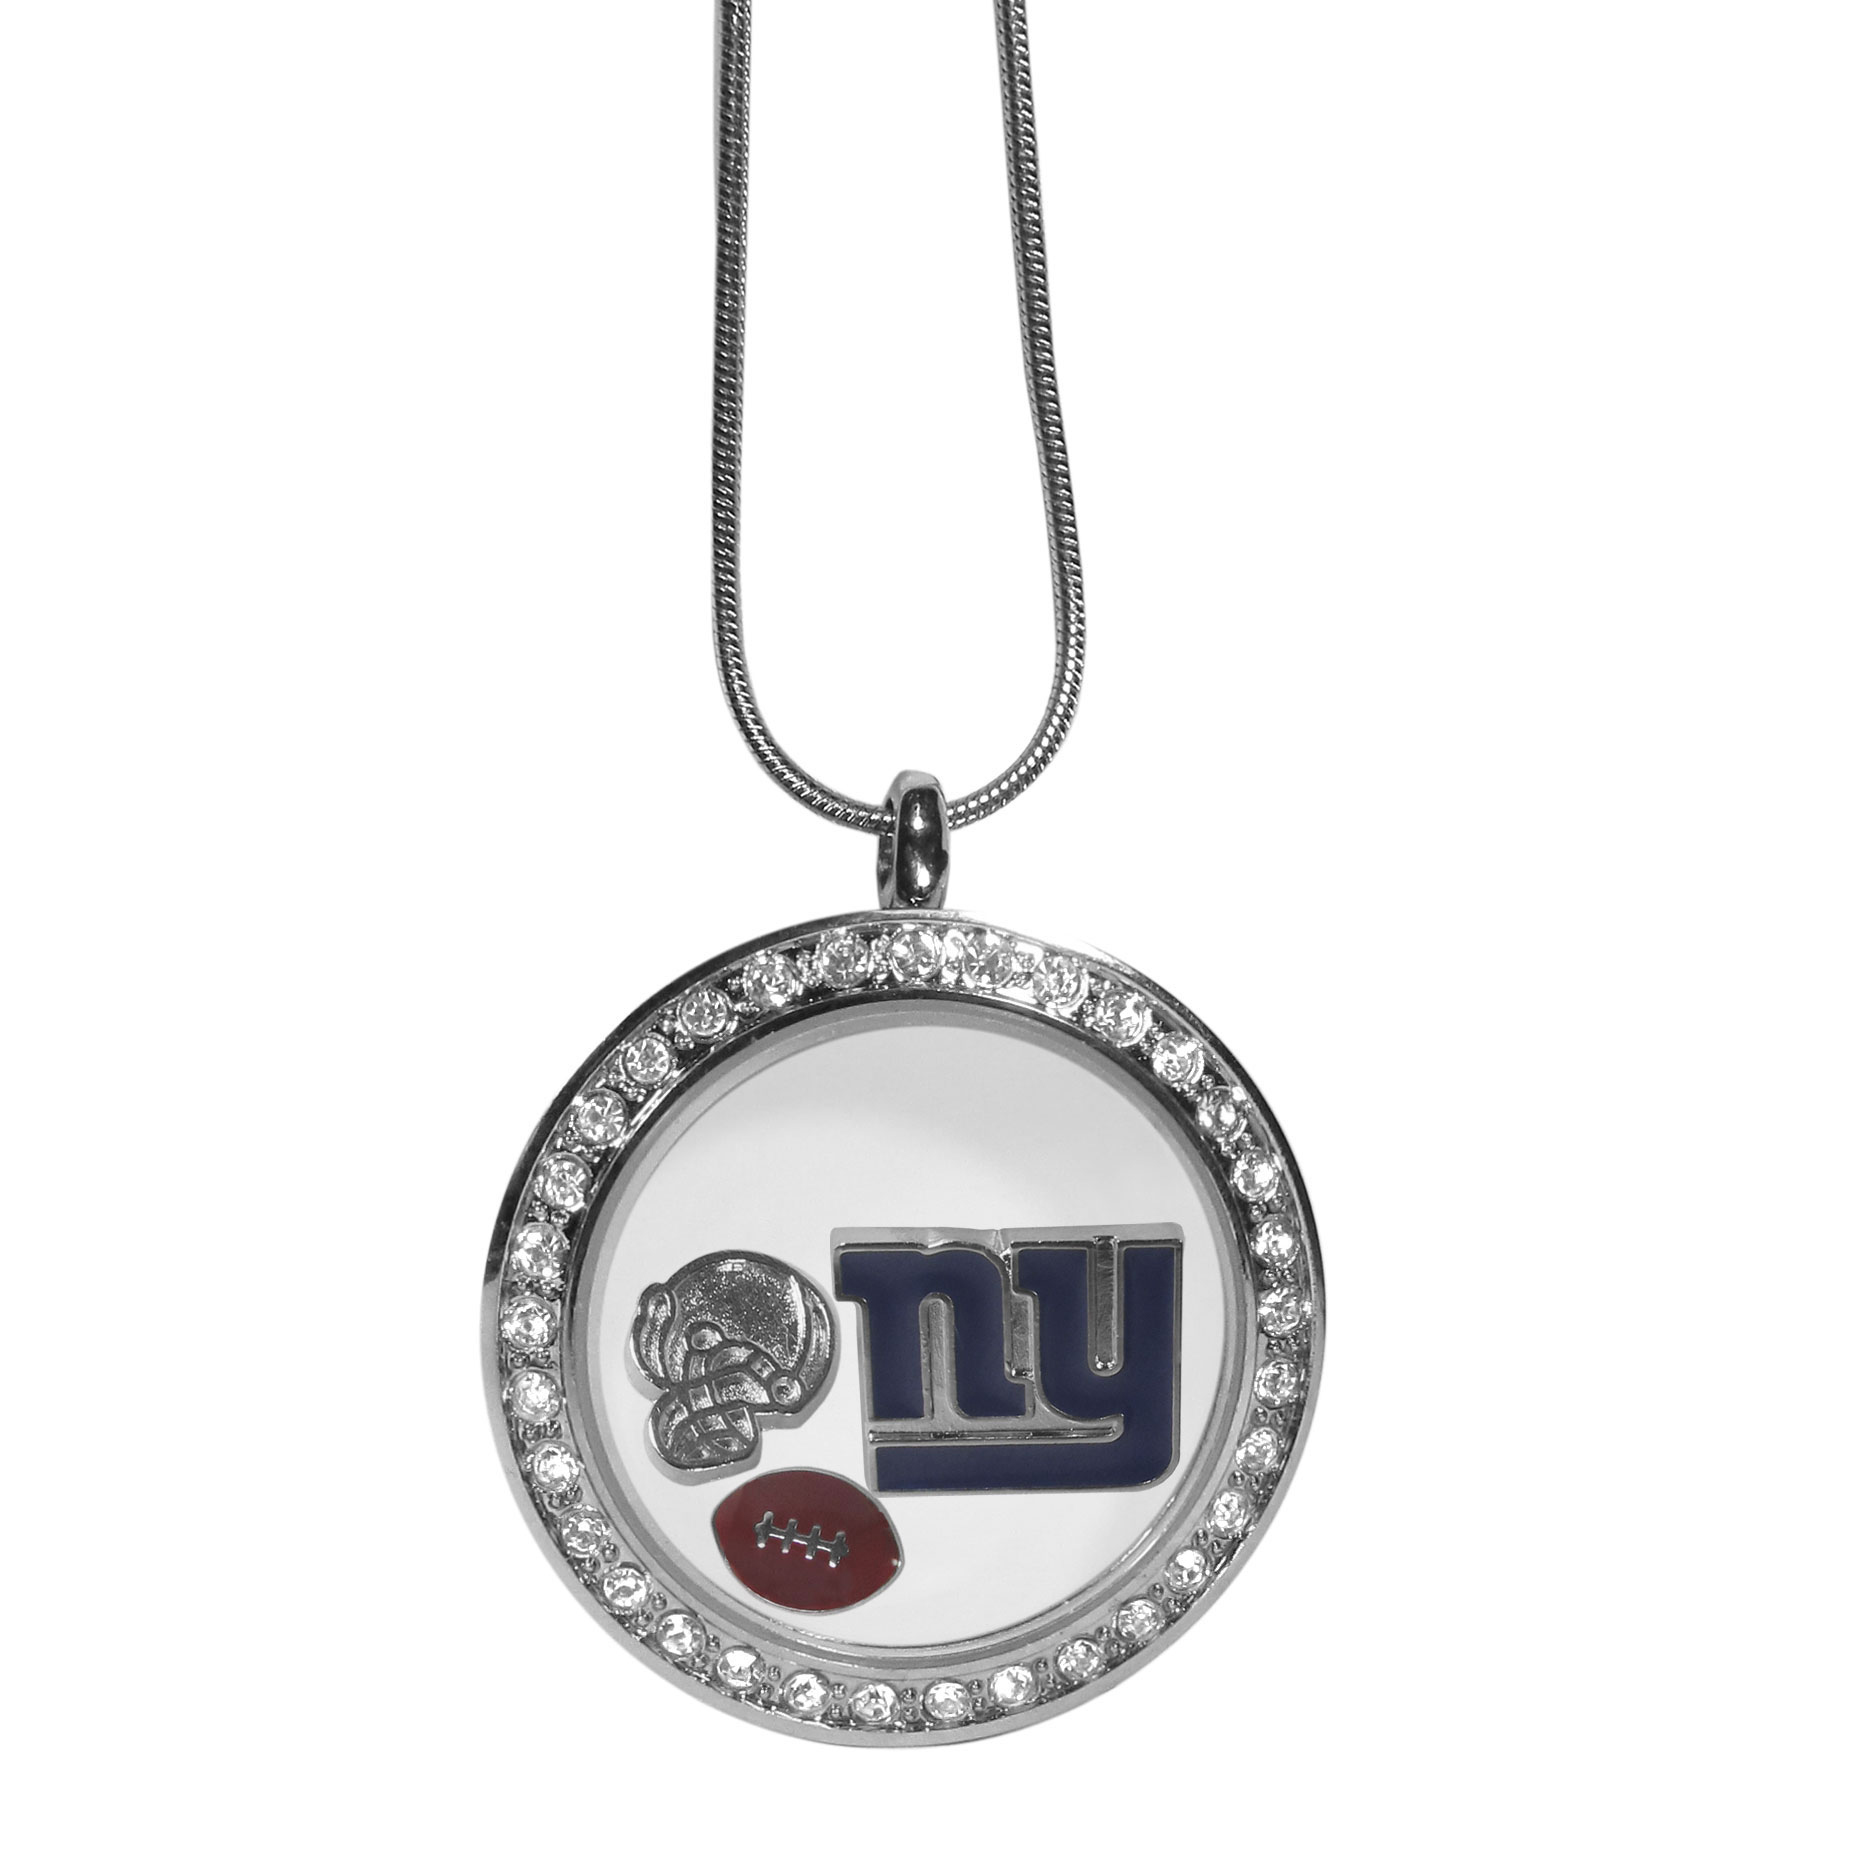 New York Giants Locket Necklace - We have taken the classic floating charm locket and combined with licensed sports charms to create a must have fan necklace. The necklace comes with 3 charms; 1 New York Giants charm, one football charm and one helmet charm. The charms float in a beautiful locket that has a strong magnetic closure with a rhinestone border. The locket comes on an 18 inch snake chain with 2 inch extender.